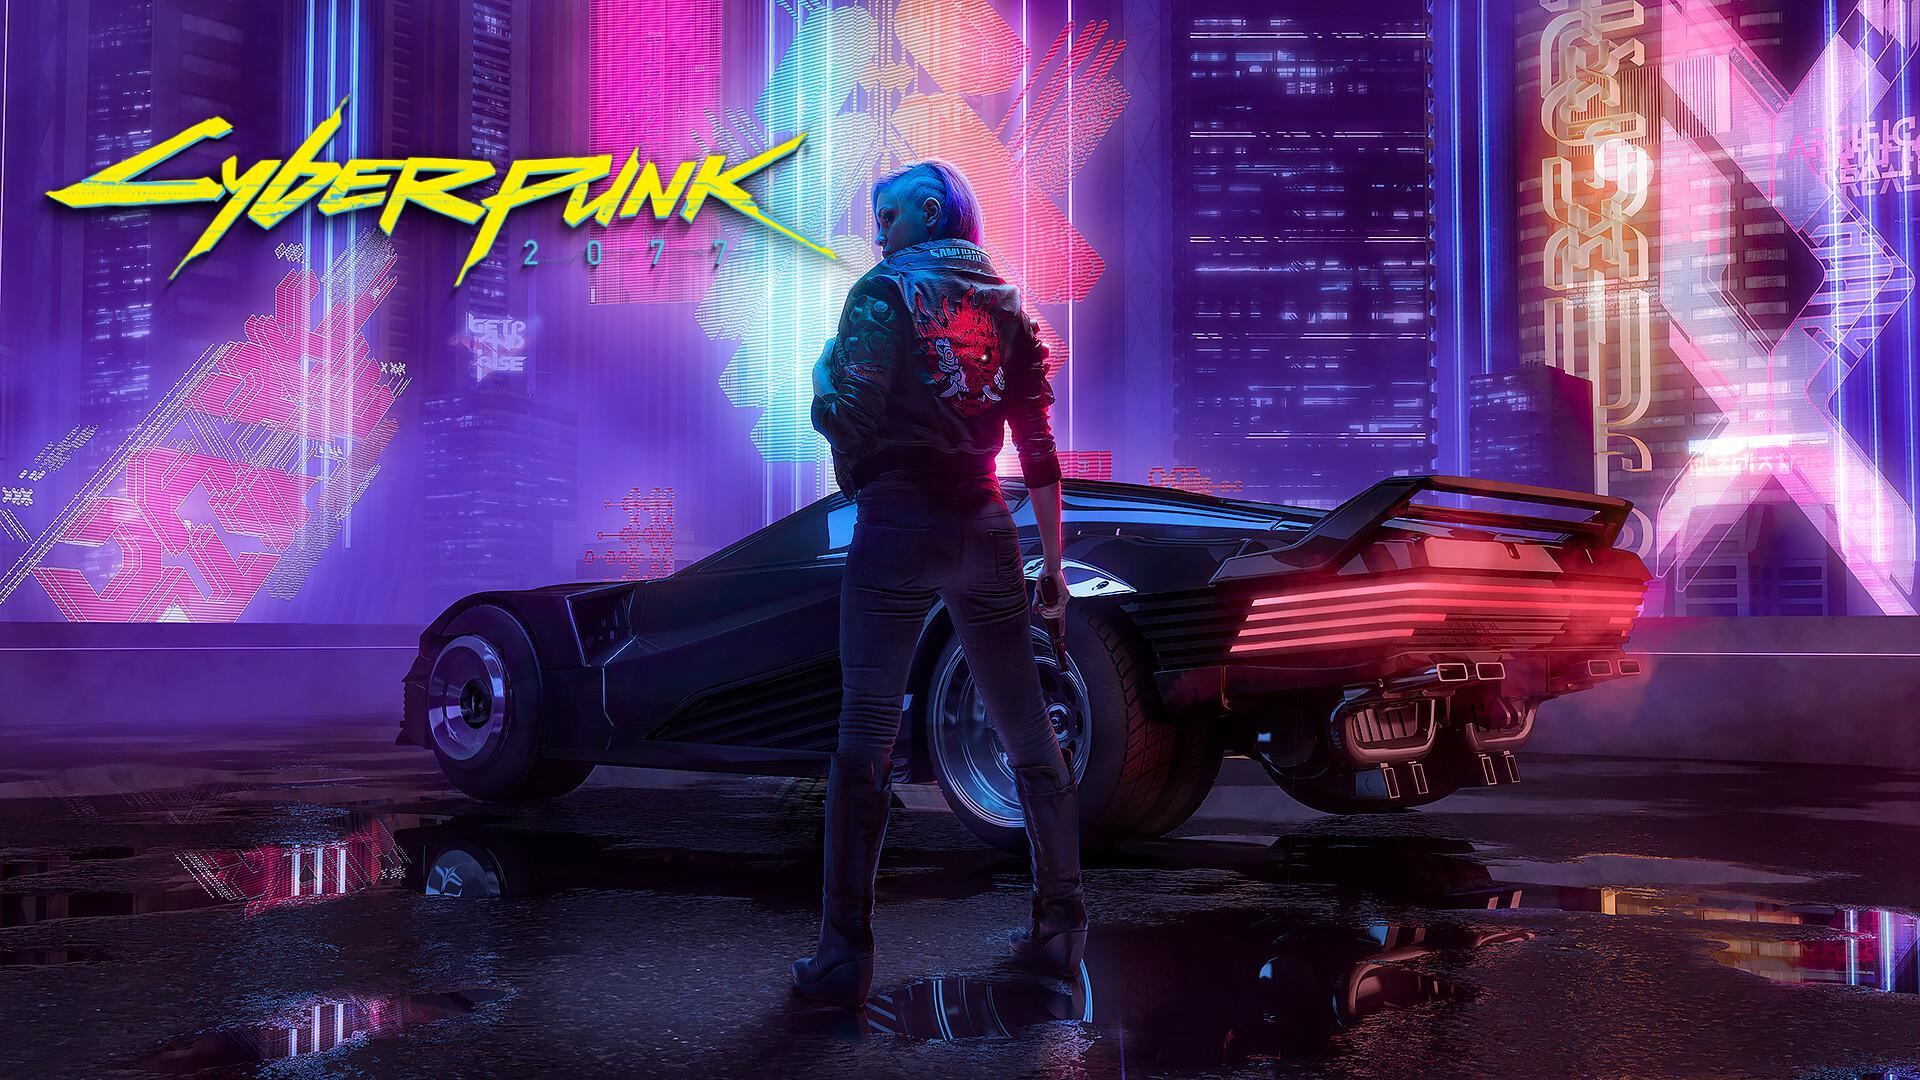 CD Projekt Red Investor Meeting Details: Cyberpunk 2077 Issues, Multiplayer Release Date, and Witcher 4 Rumors